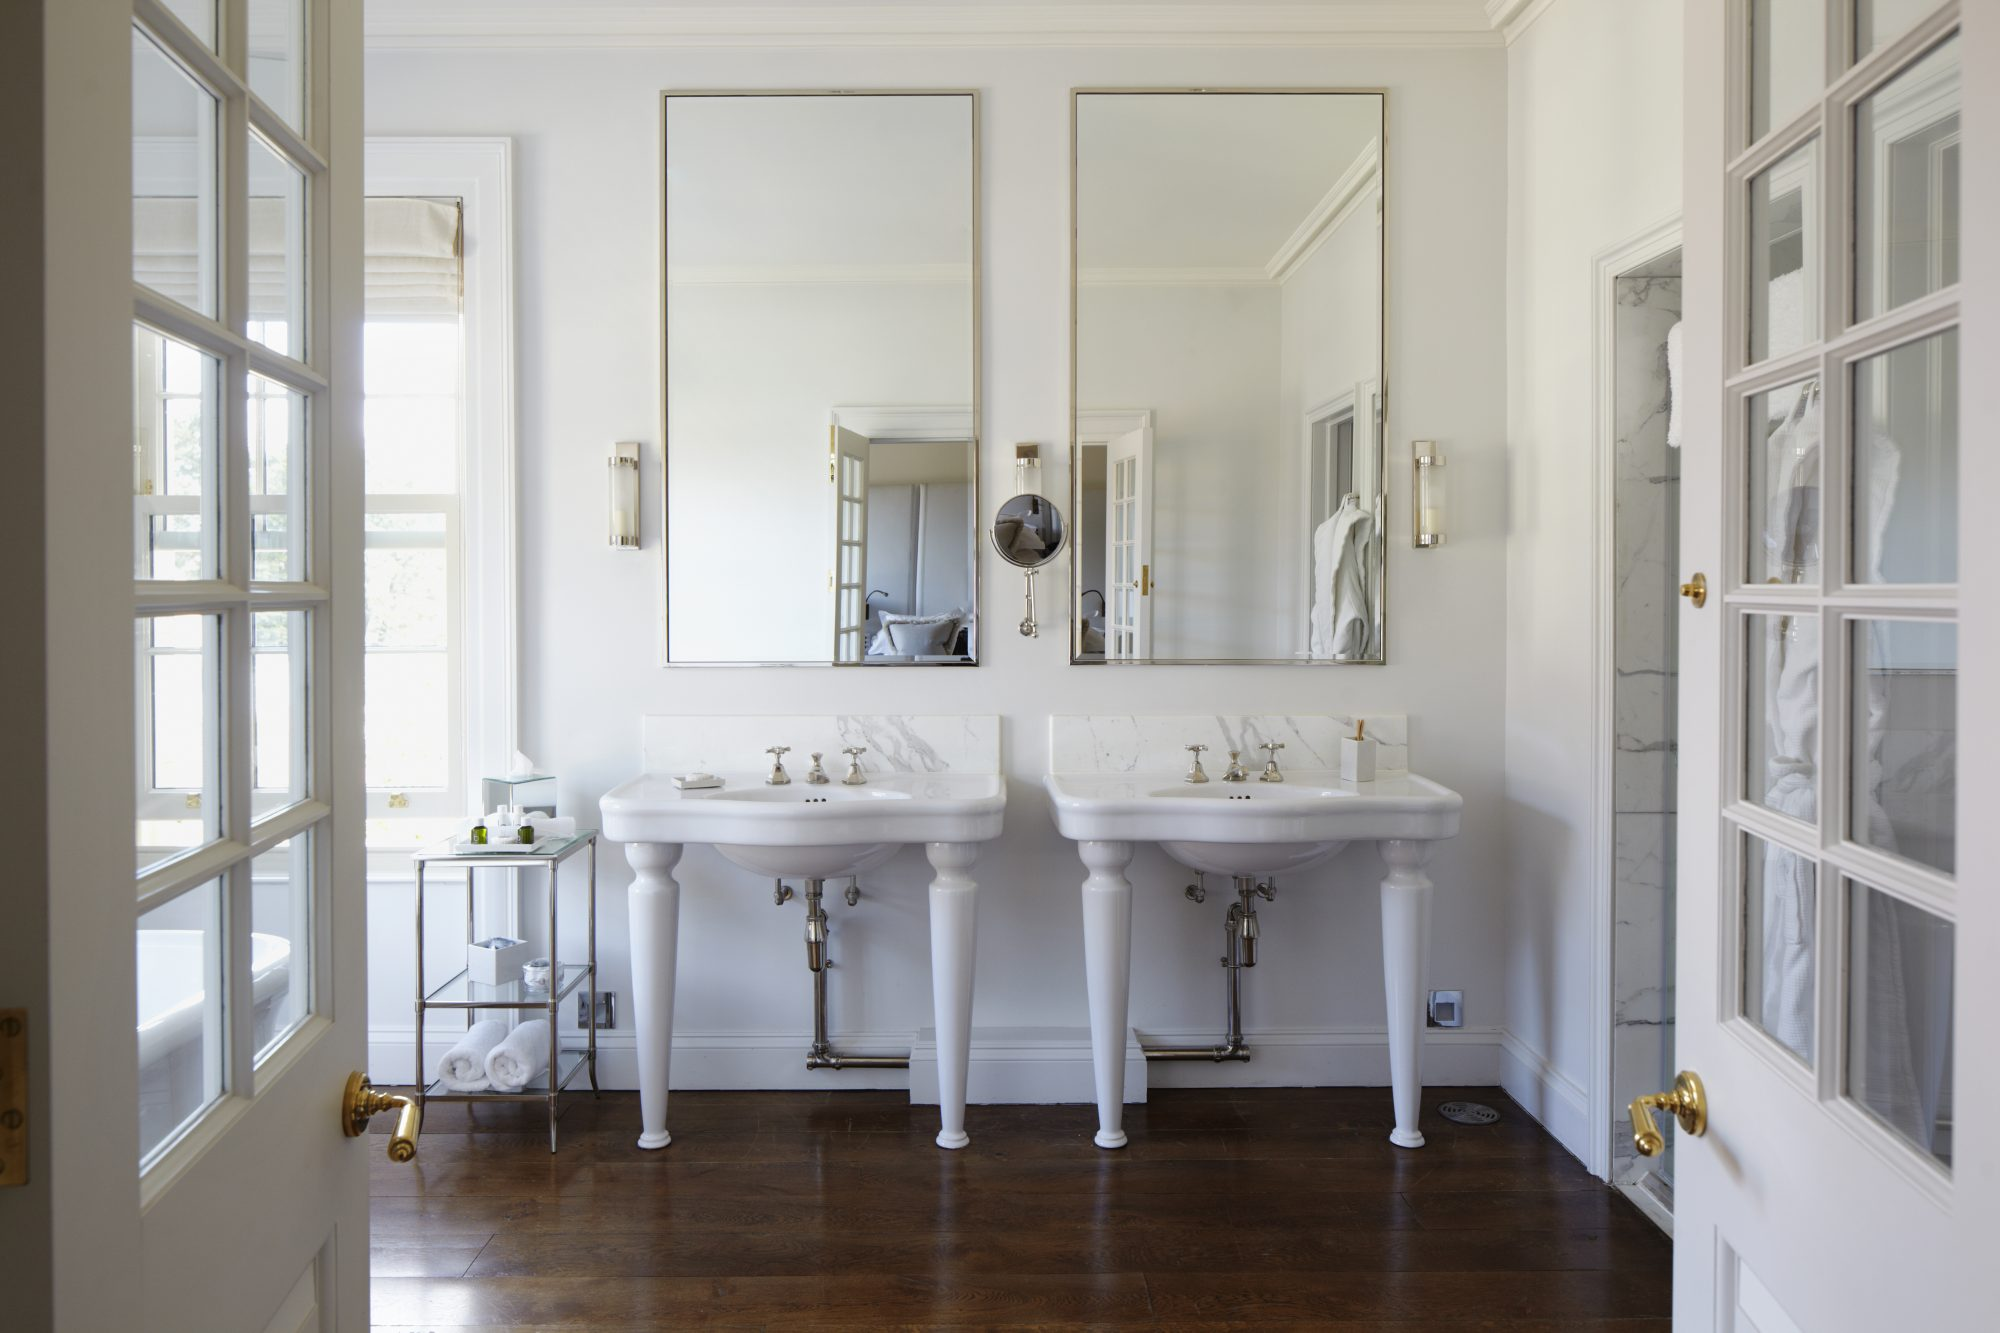 Never Make This Mistake When Painting Your Bathroom Southern Living,Subway Tile Backsplash Around Kitchen Window